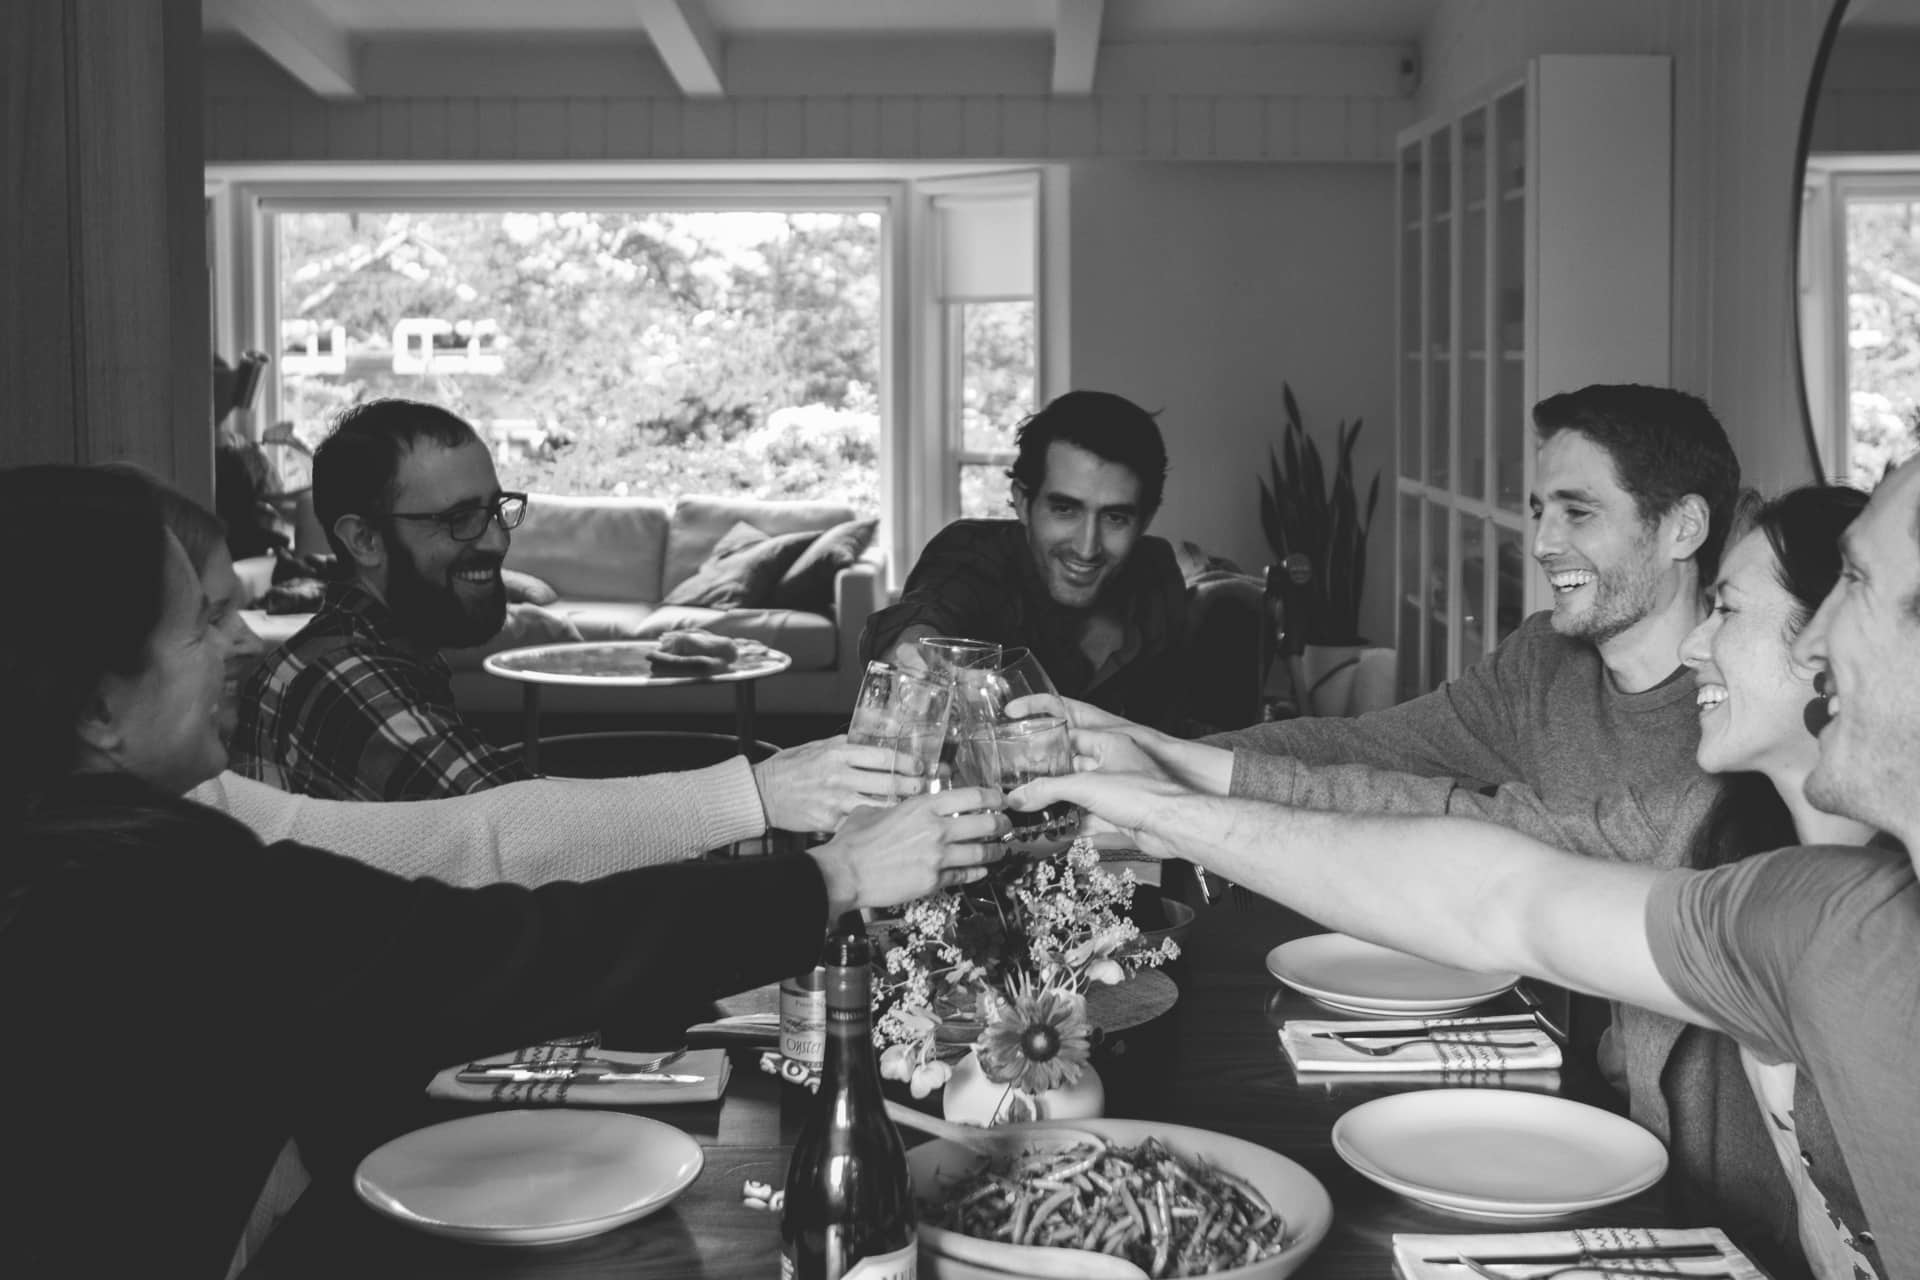 Feed My Friends - A dinner party blog, hero image.